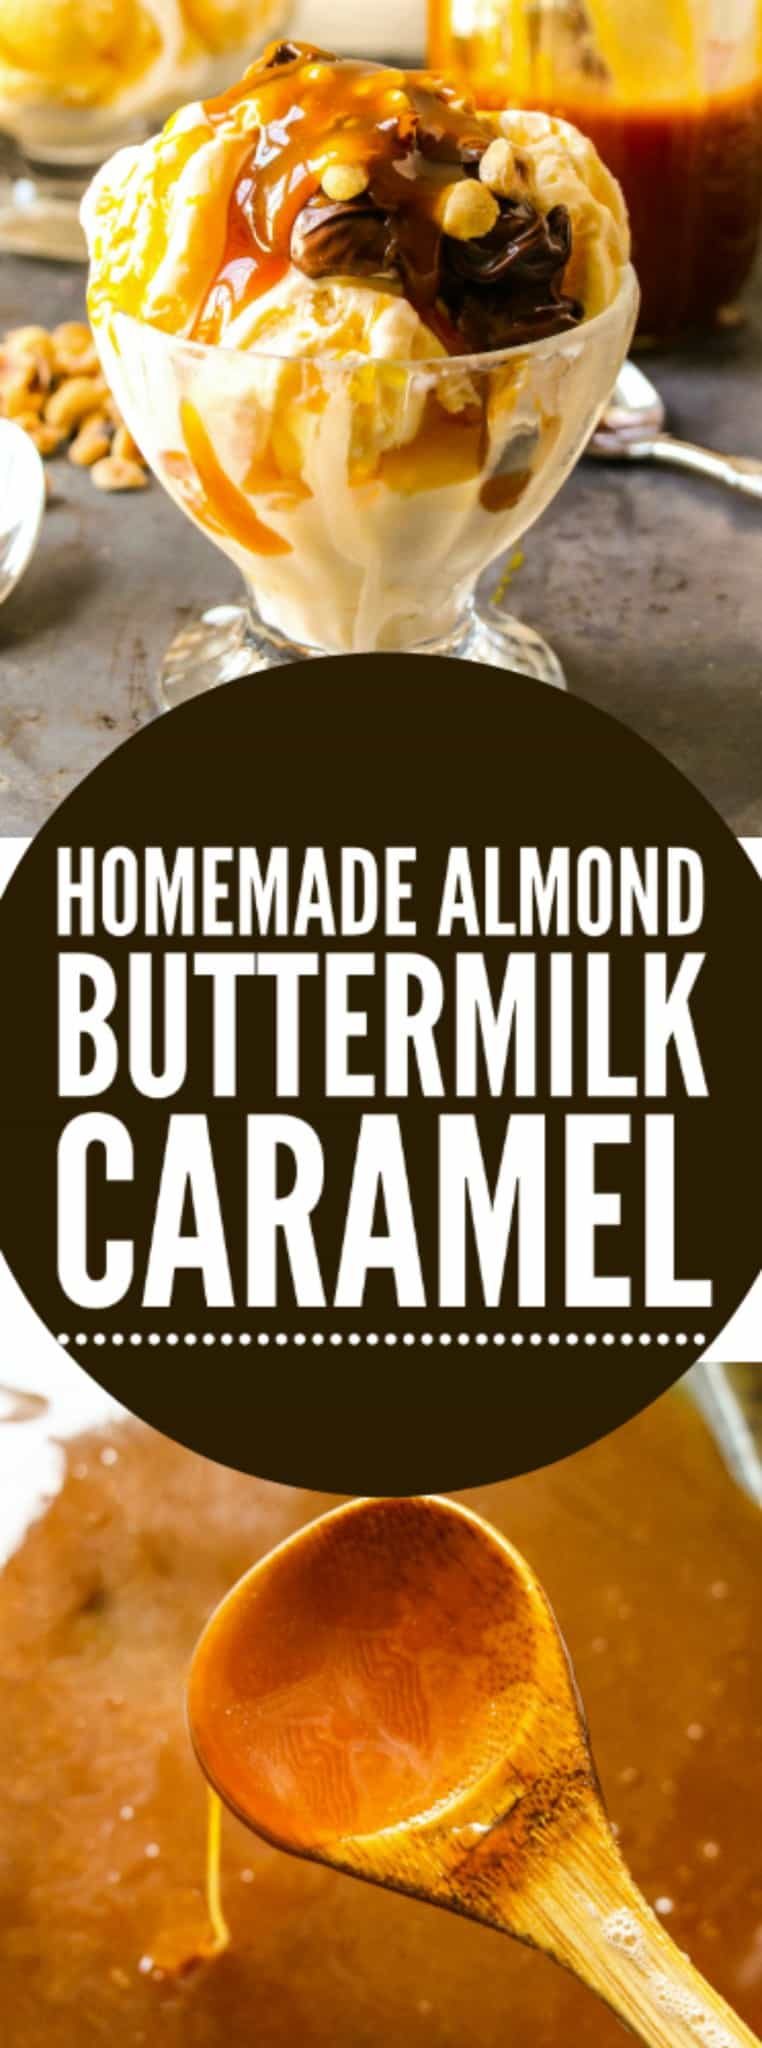 buttermilk-caramel